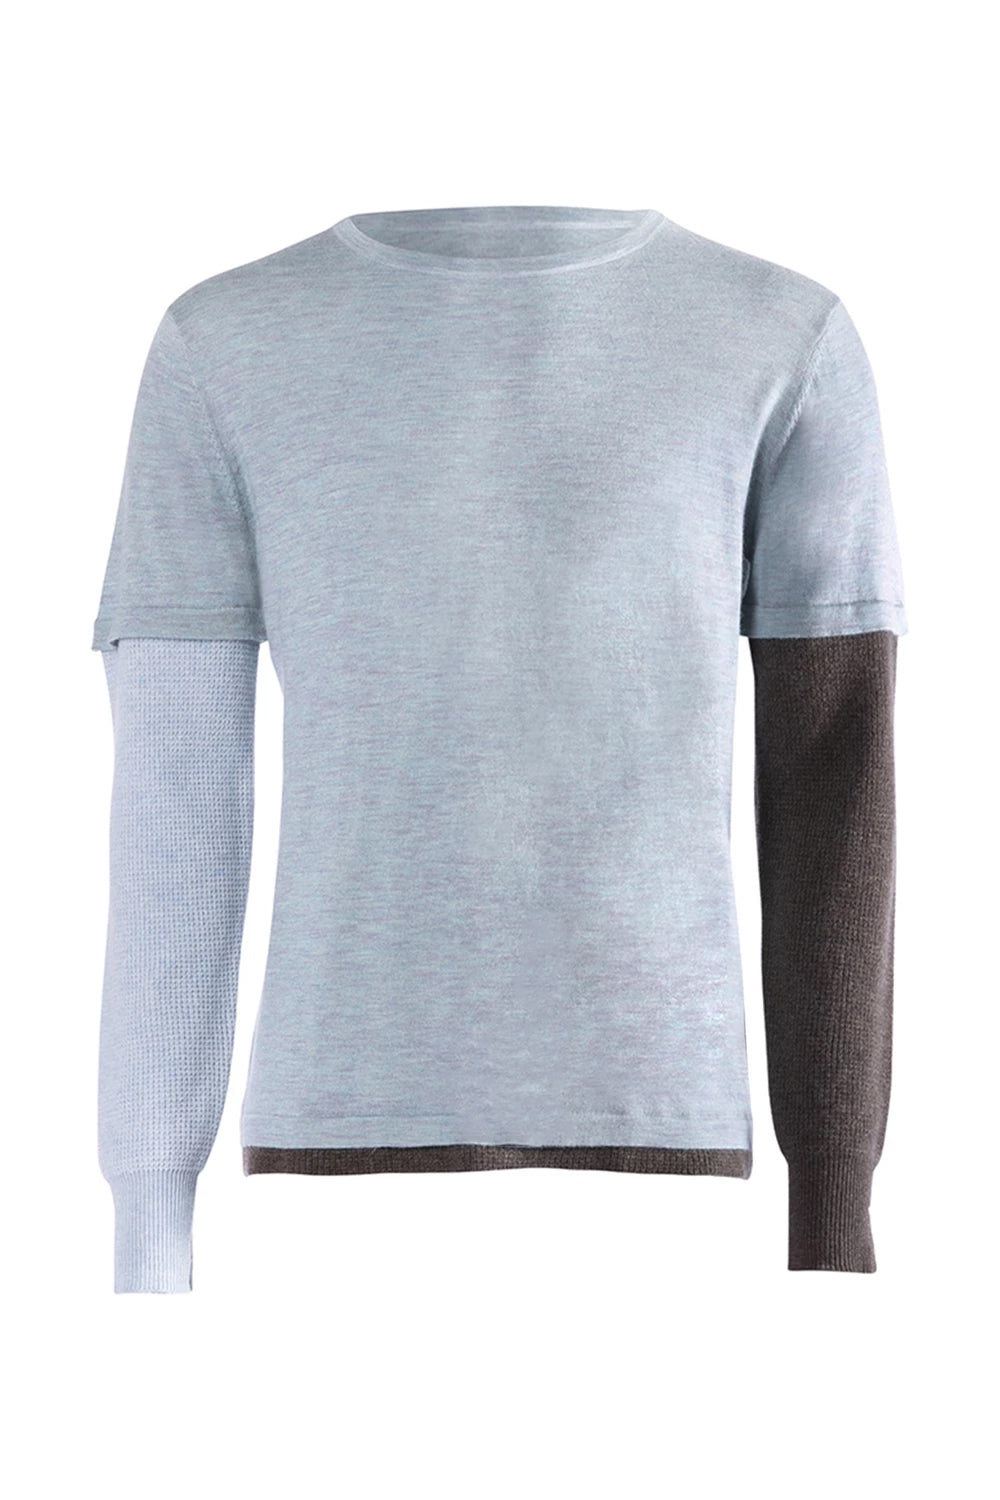 ISM Cashmere Waffle Long Sleeve Light Blue/Brown